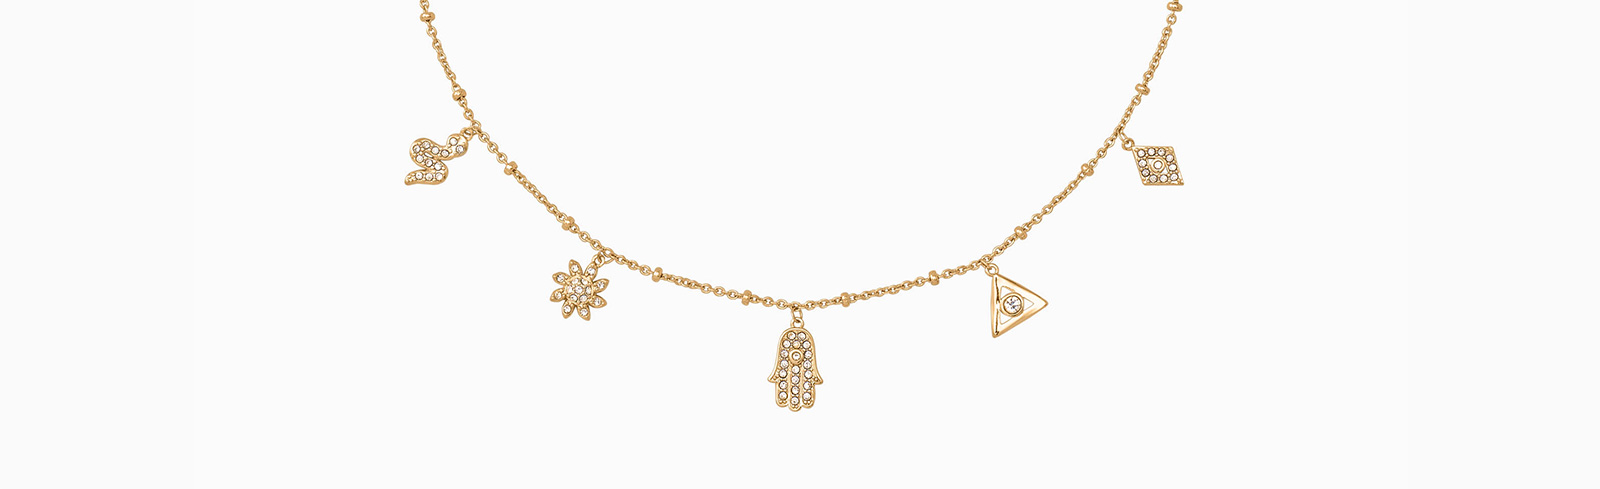 Shop Stella and Dot Necklaces